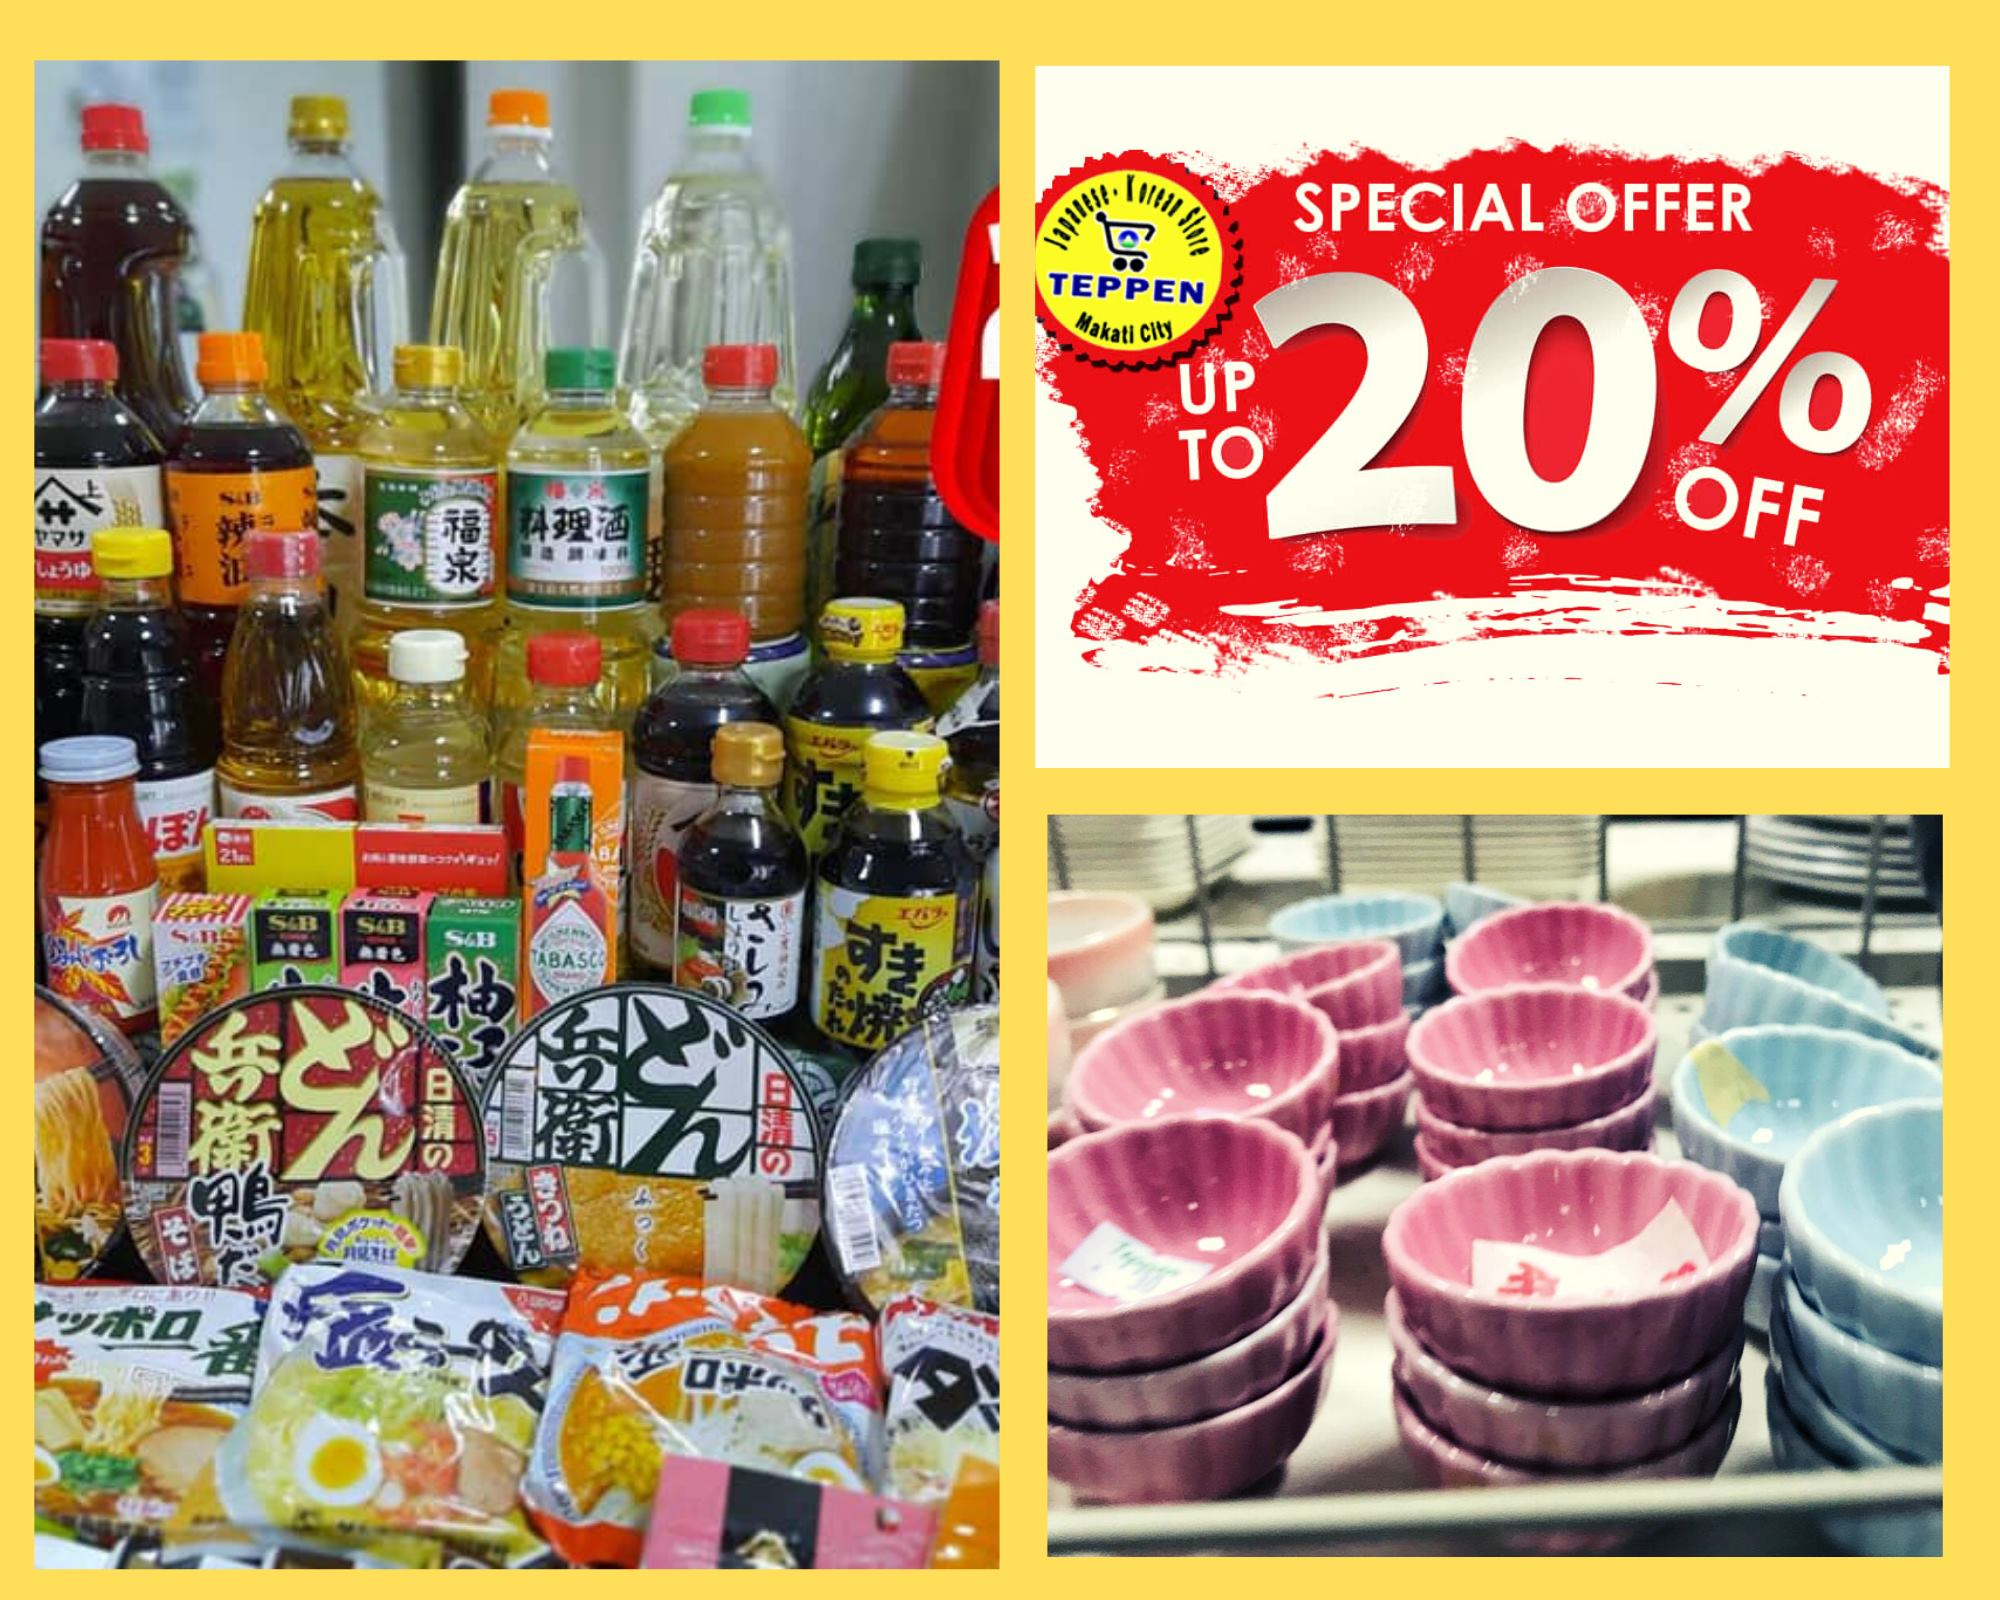 GREAT DEALS: Teppen Grocery Store in Makati offers SALE up to 20% OFF